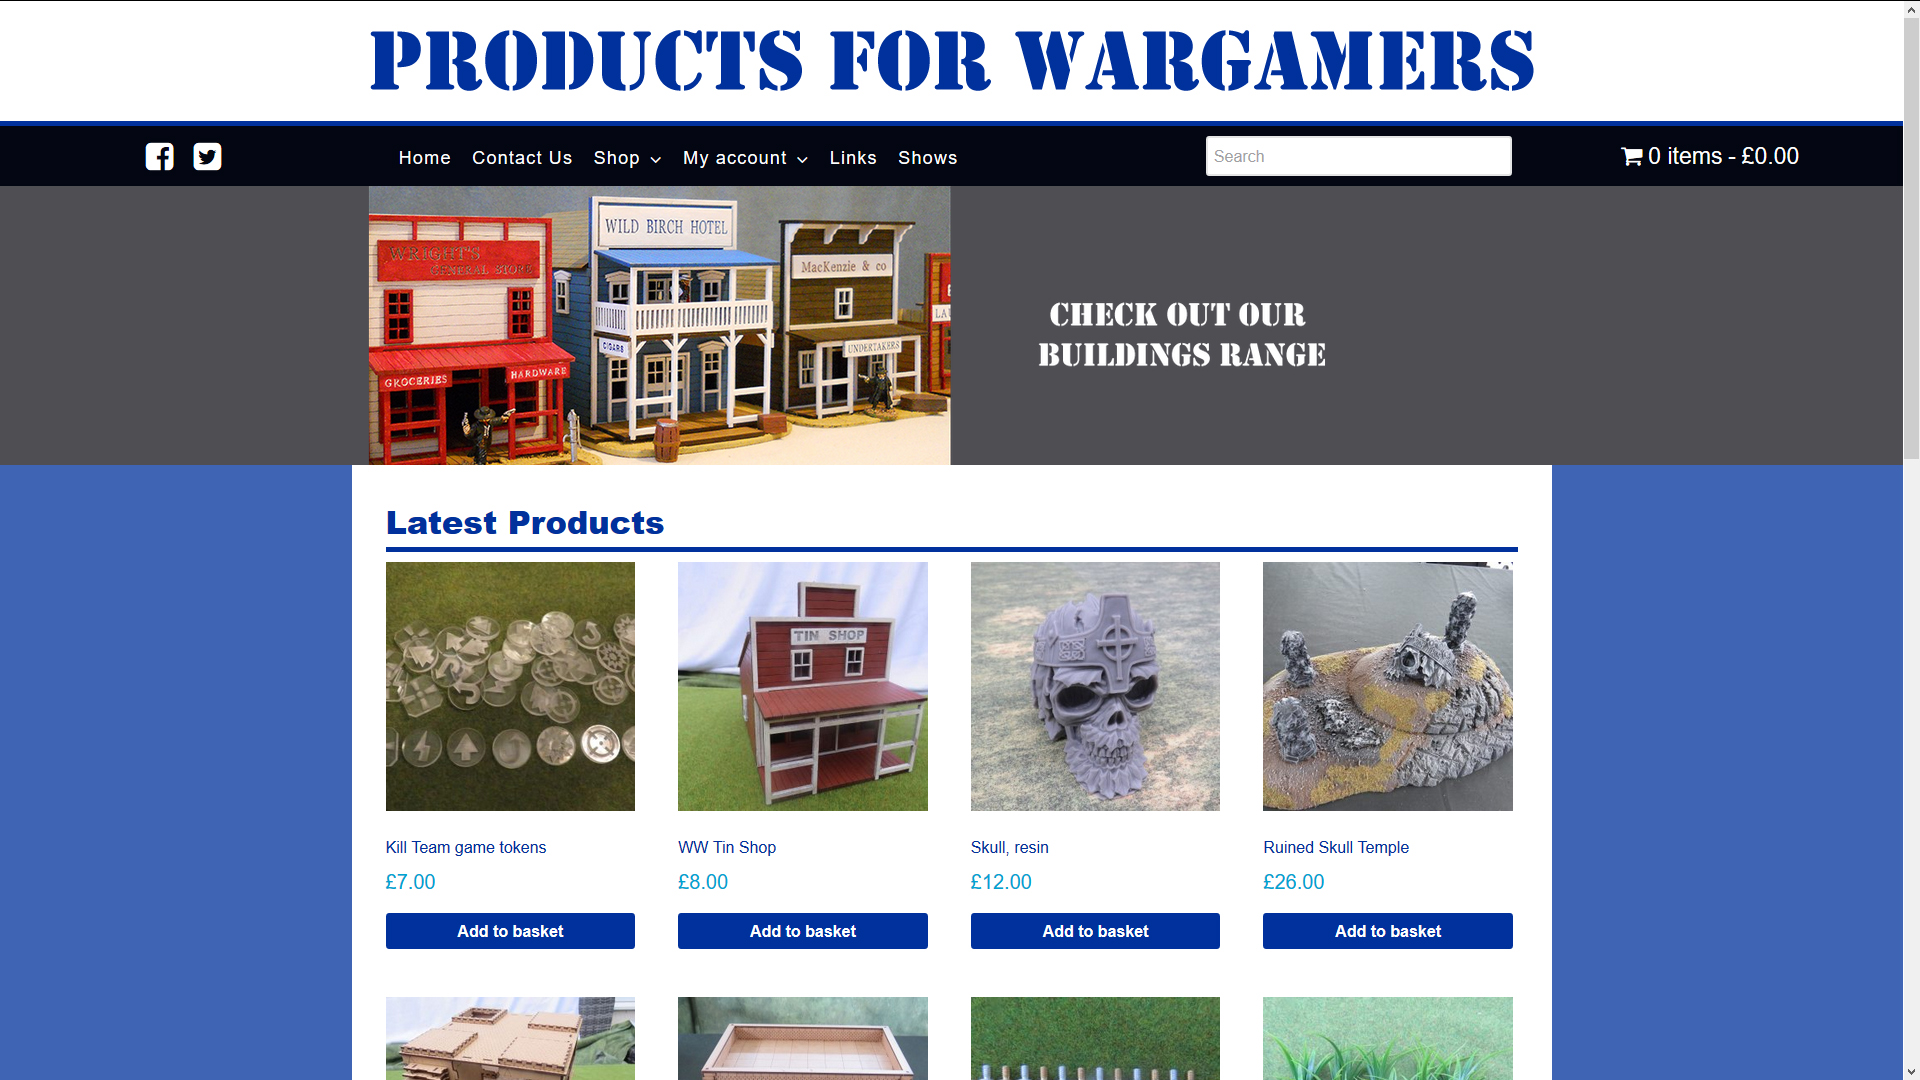 Products For Wargamers